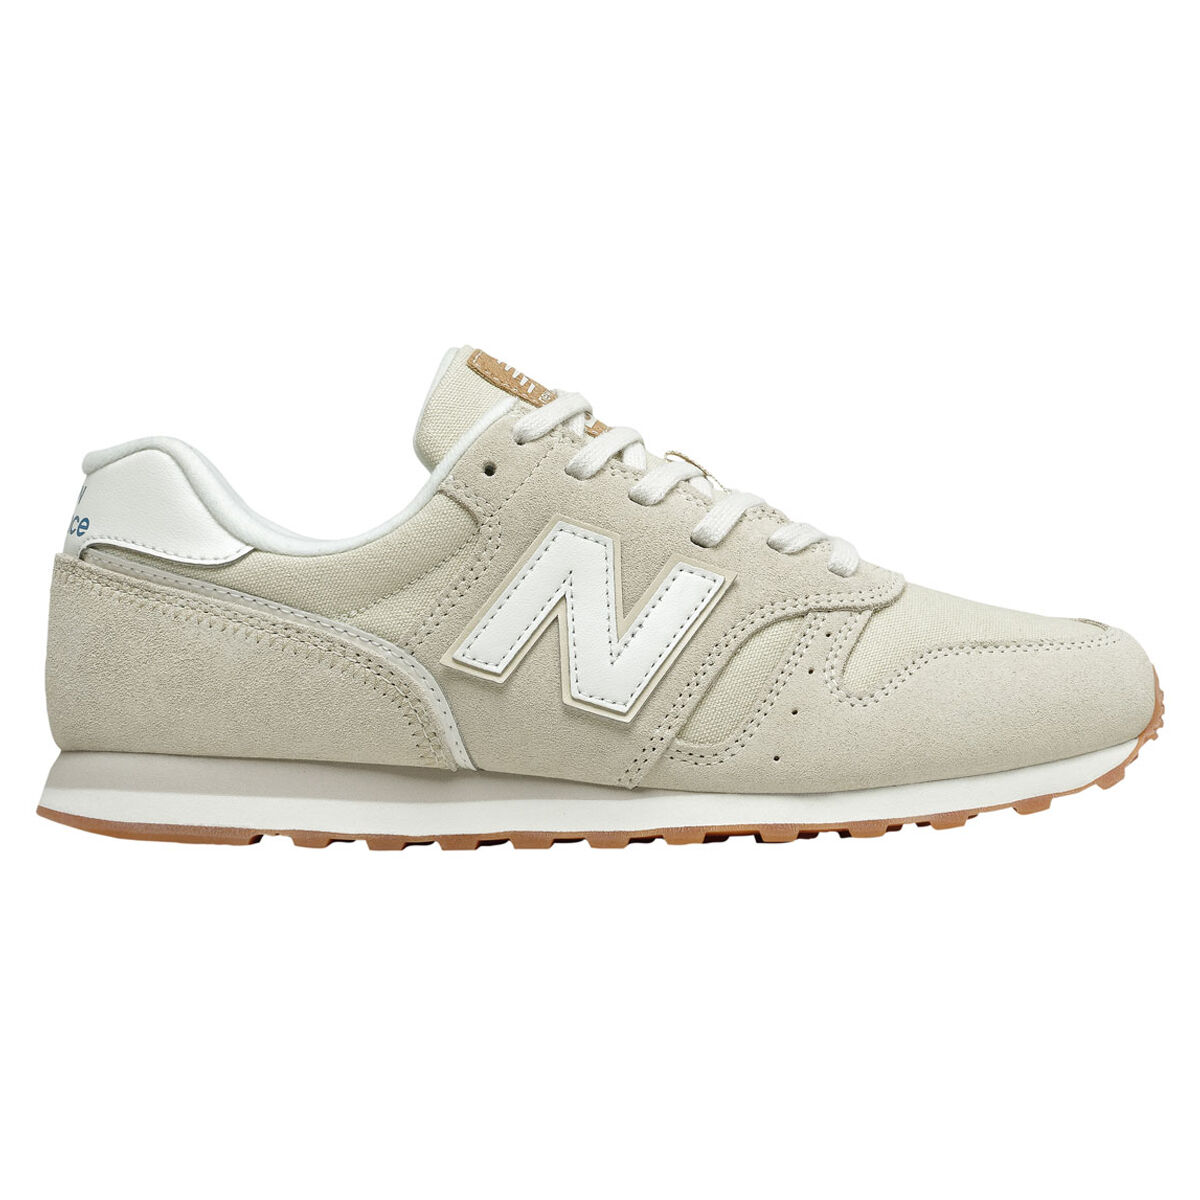 New Balance 373 Mens Casual Shoes